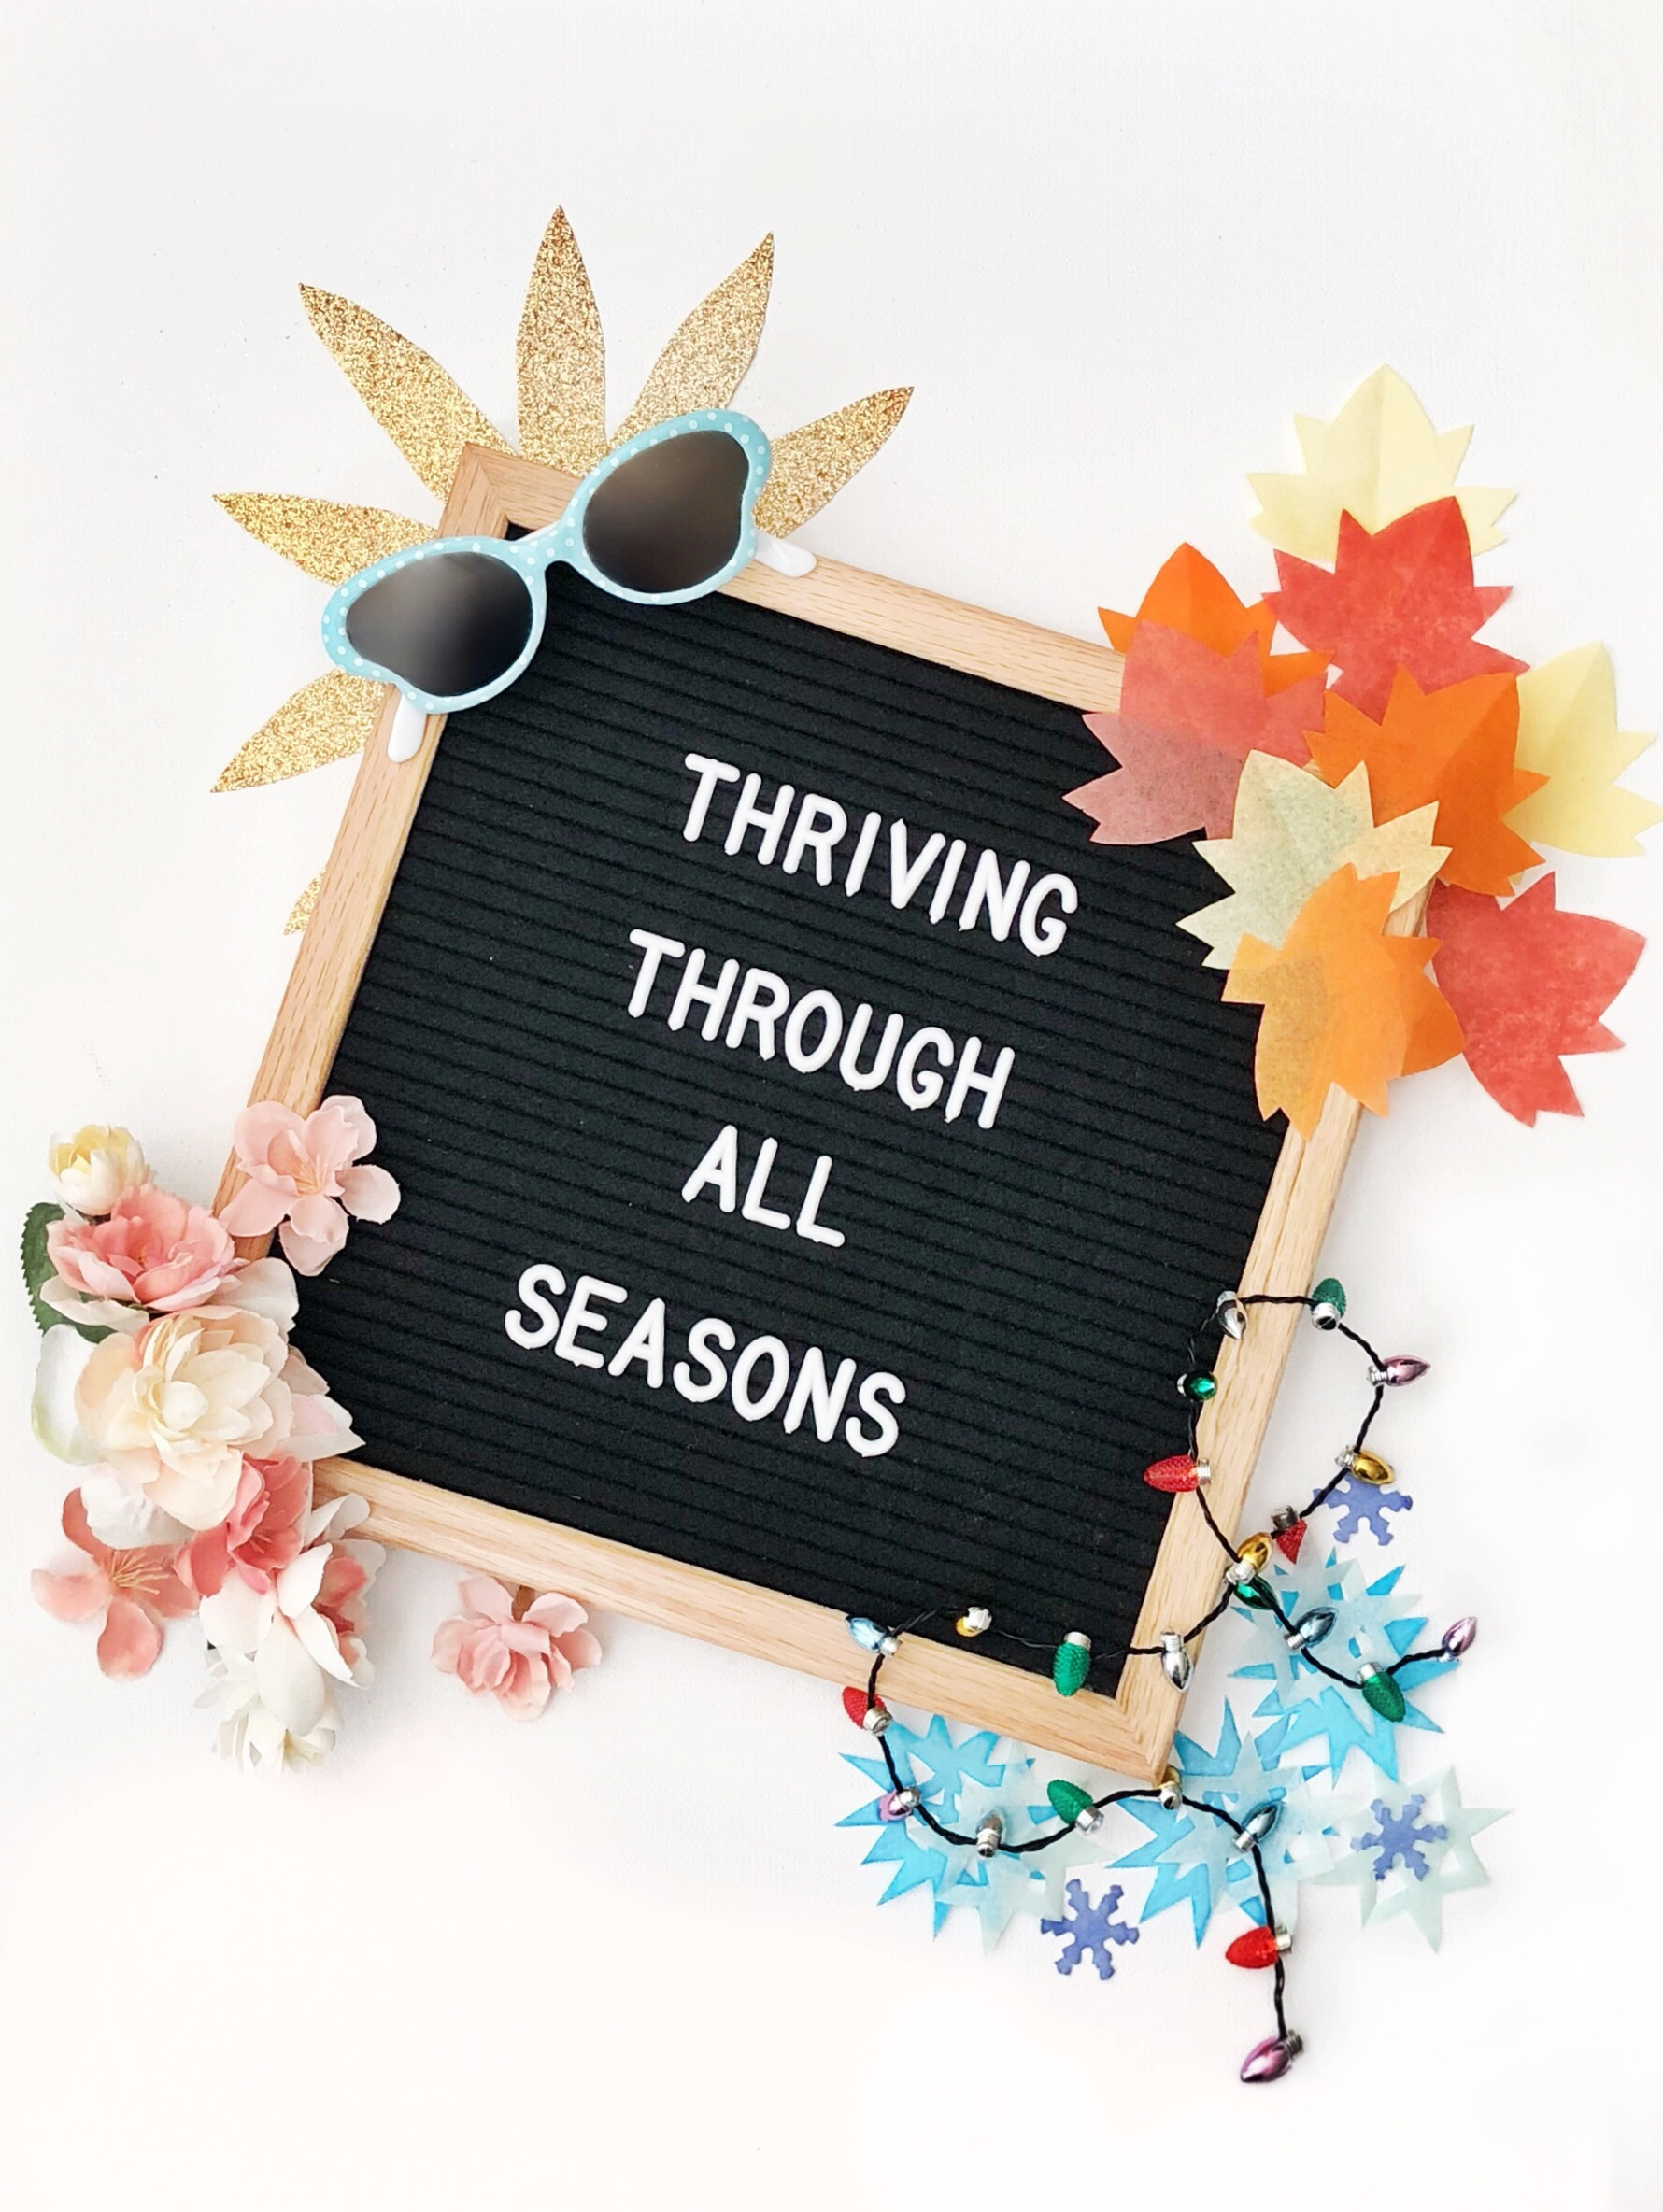 Thriving Through All Seasons